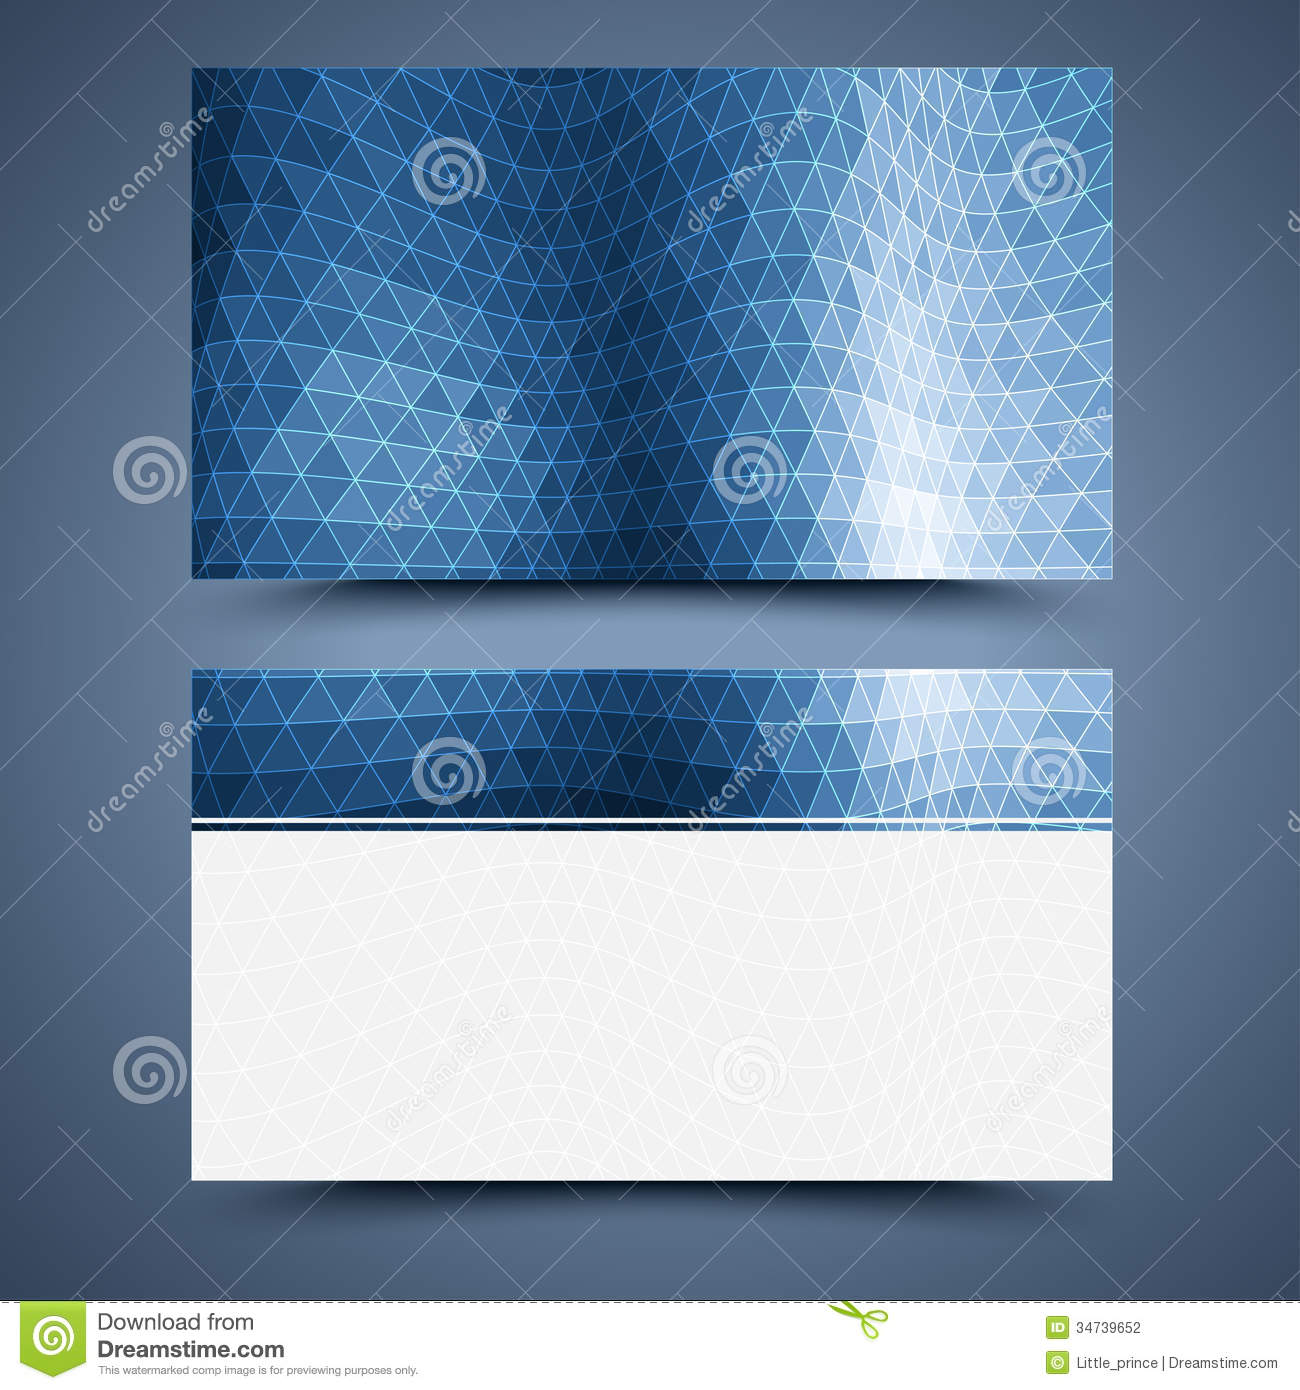 Blue business card template abstract background stock vector download blue business card template abstract background stock vector illustration of graphic backgrounds wajeb Images